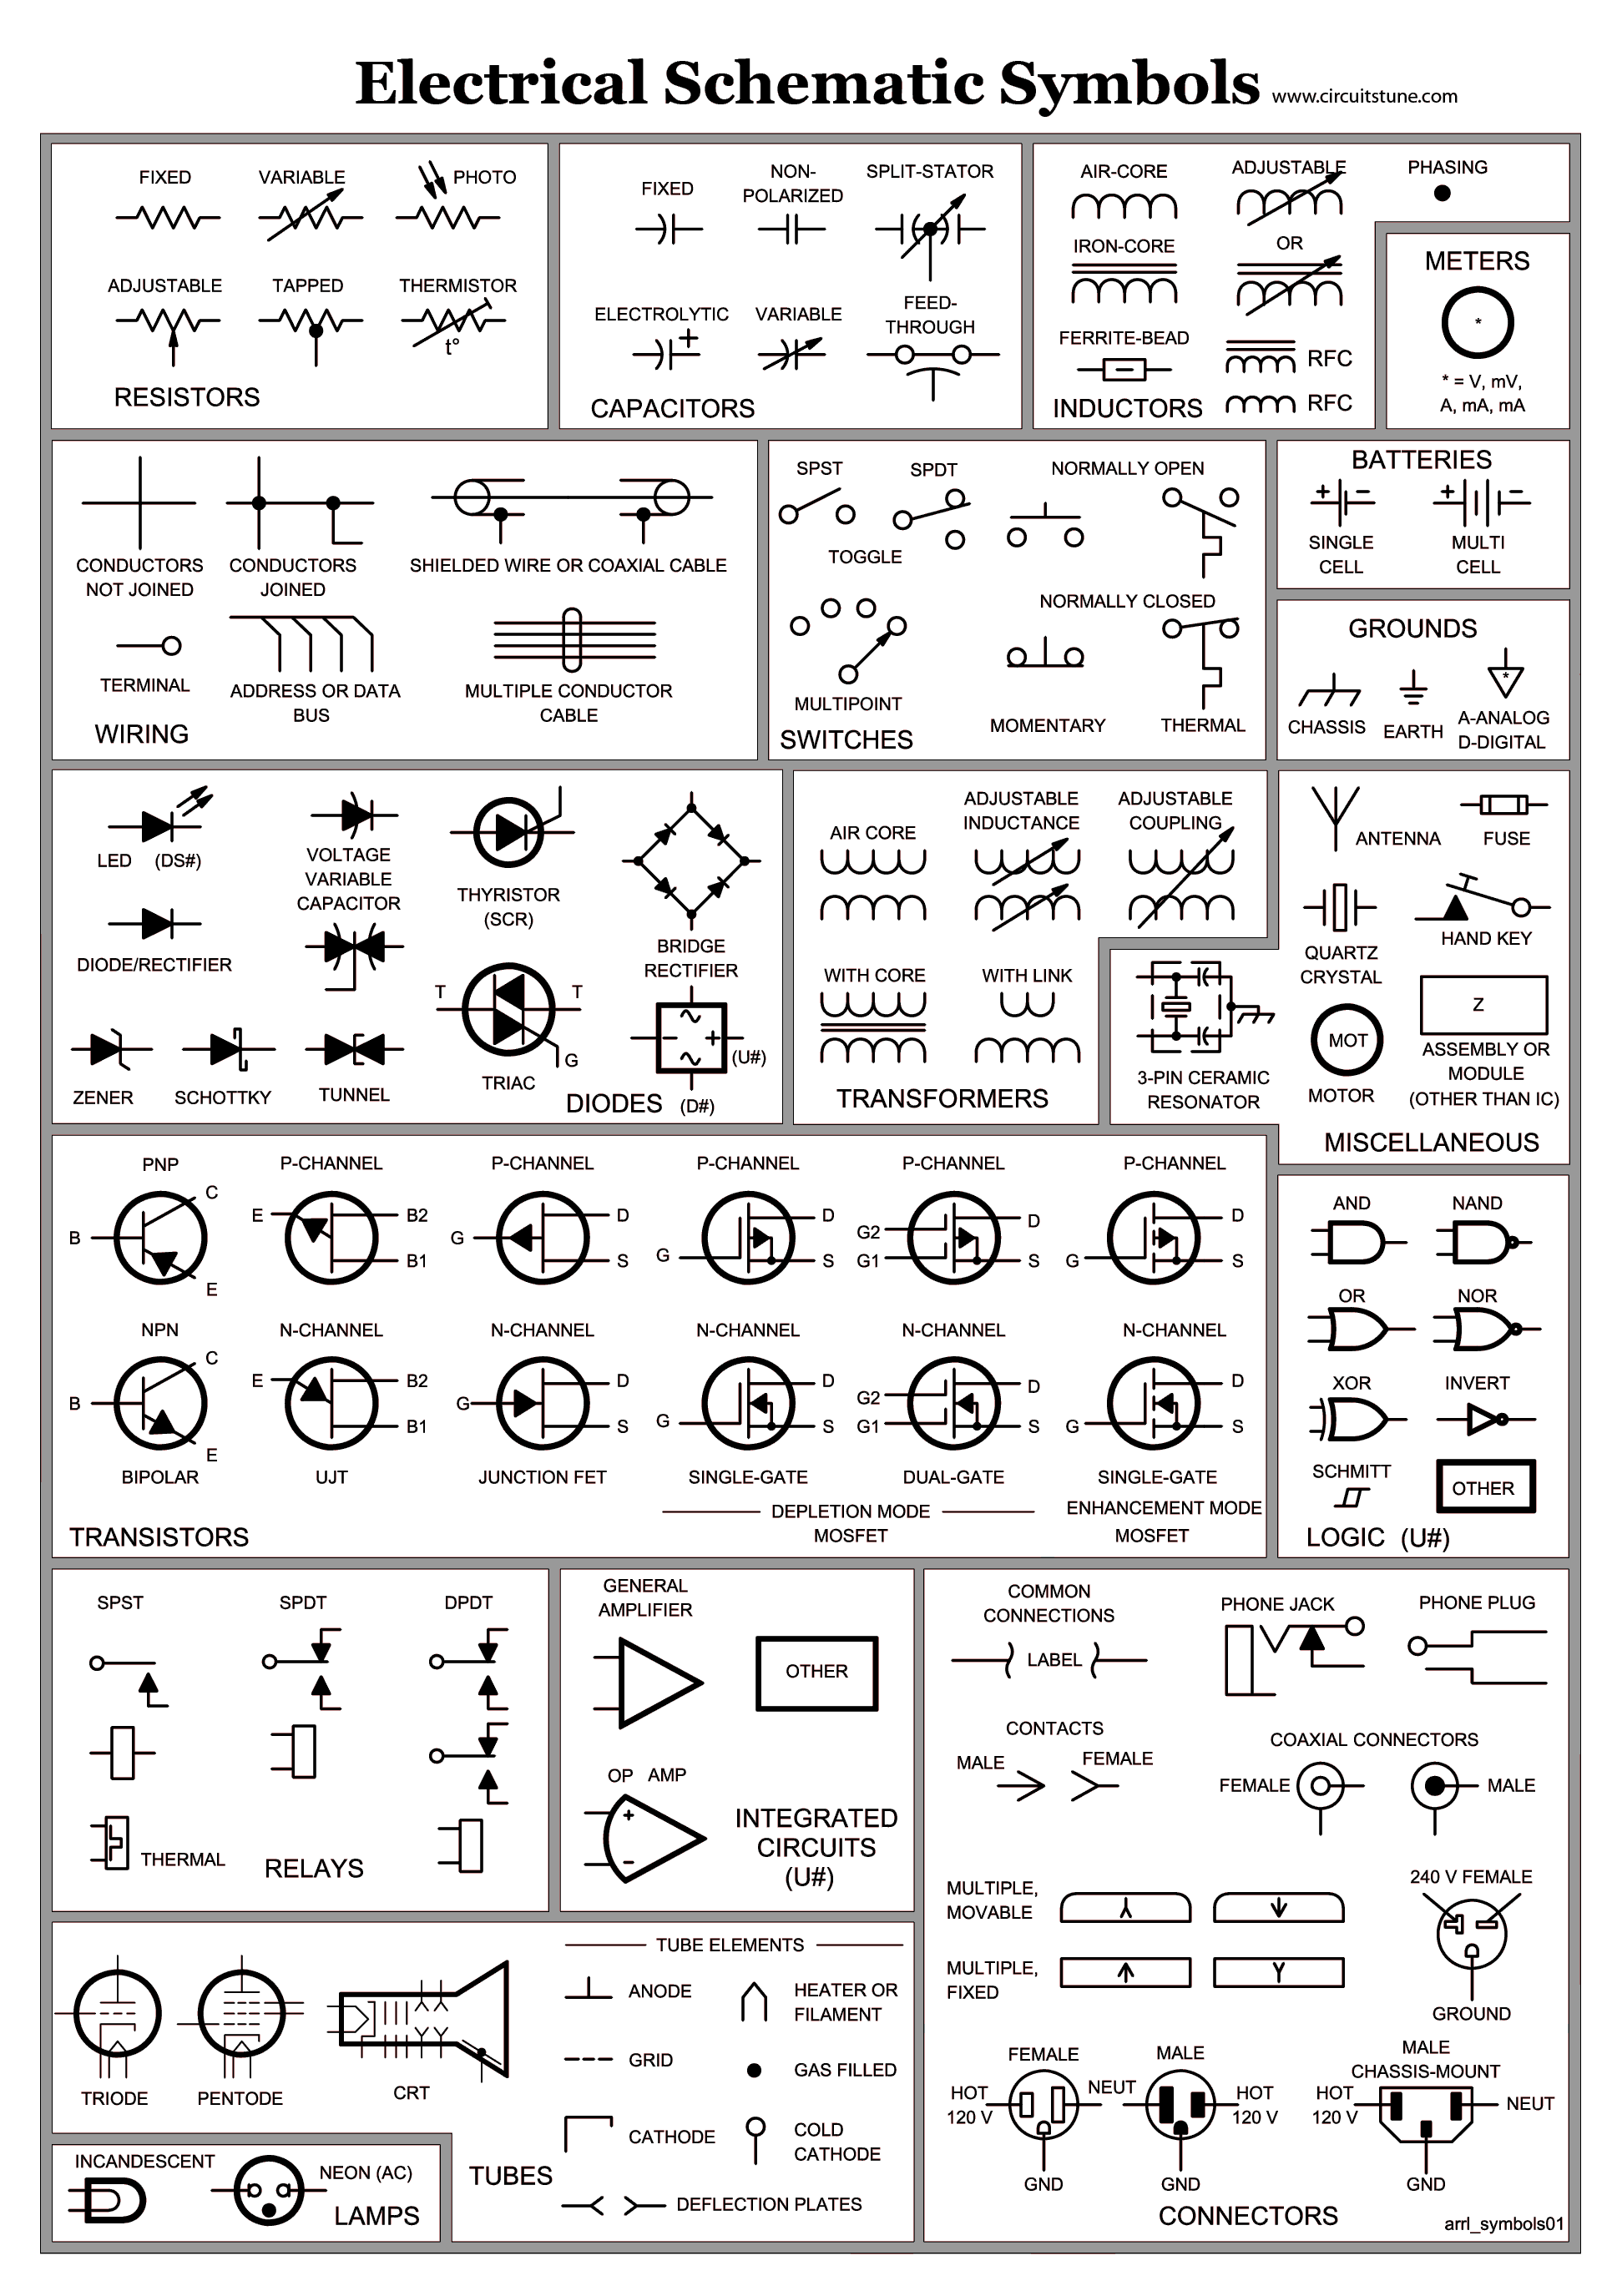 a65d176364692d2ebe913b58a654cfc3 electrical schematic symbols wire diagram symbols automotive Ford Electronic Ignition Wiring Diagram at fashall.co